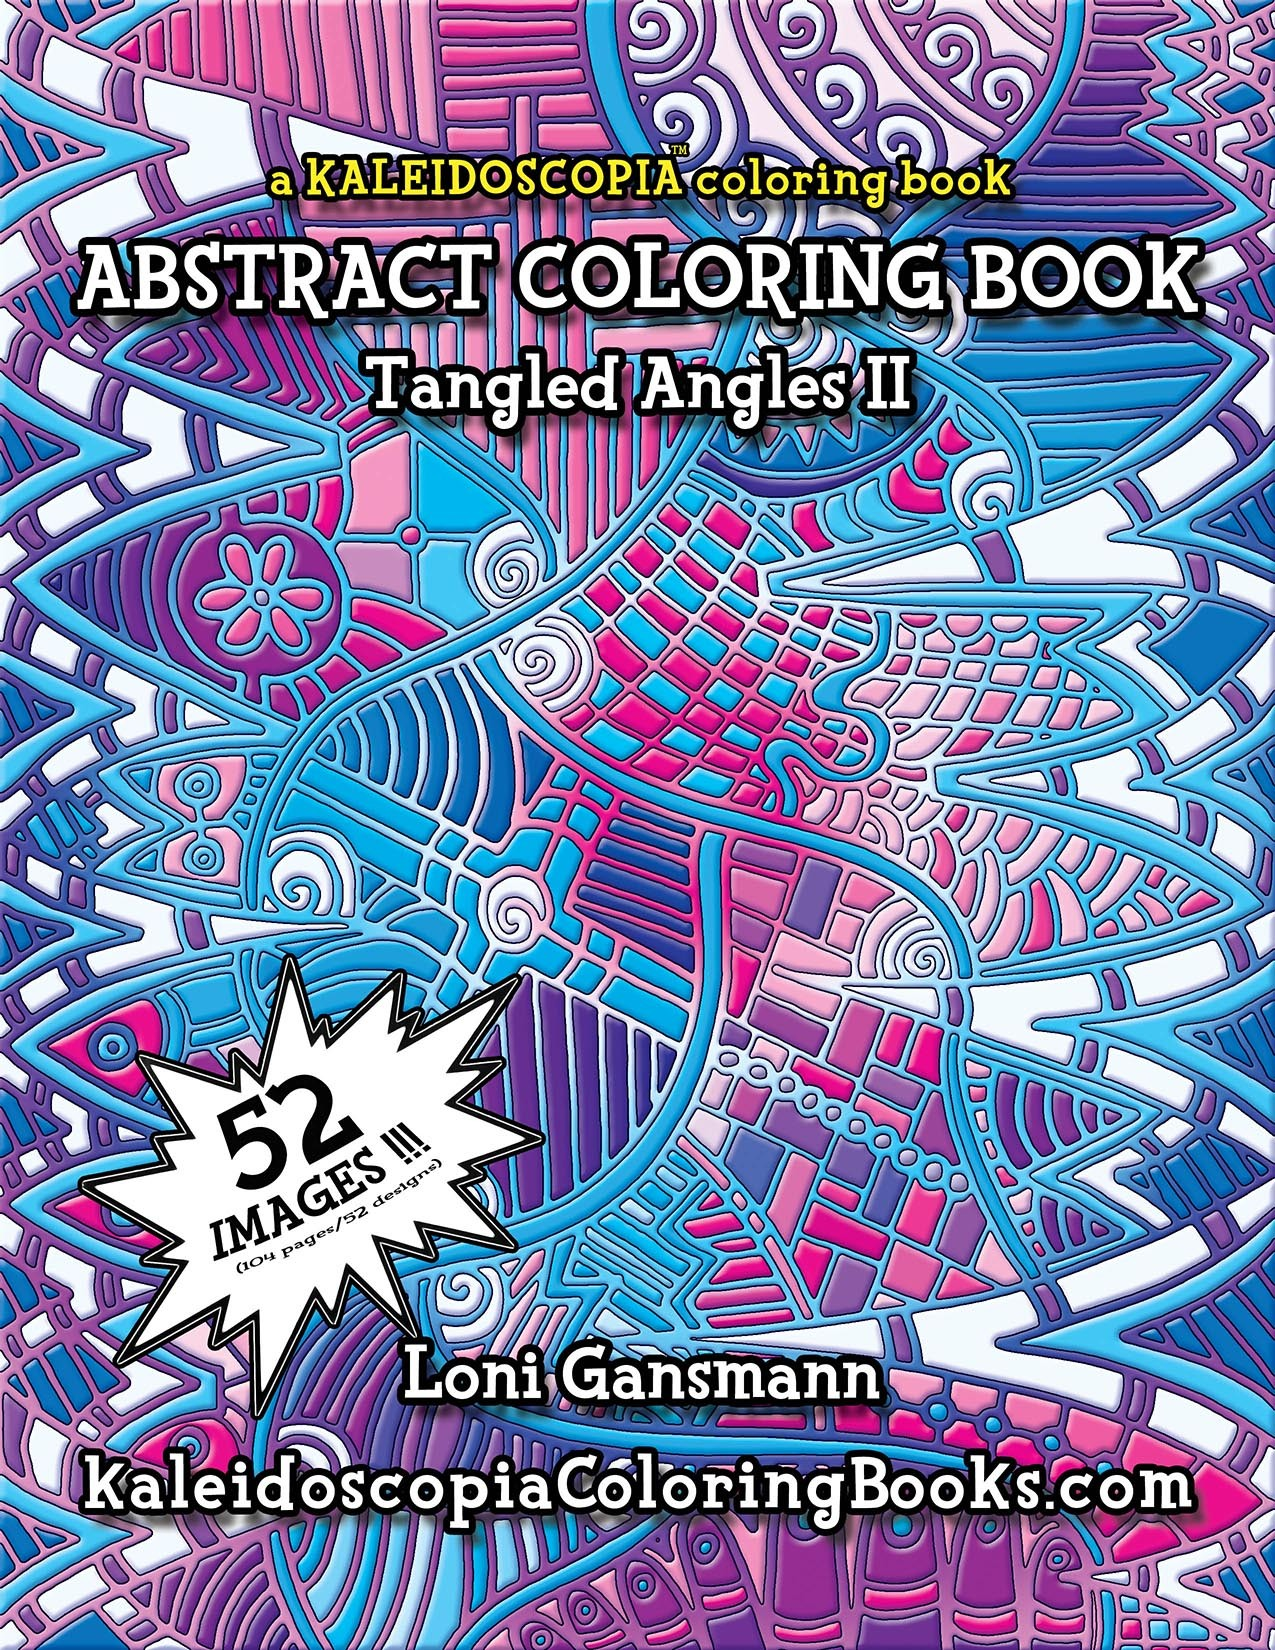 tangled angles 2 an abstract coloring book - Abstract Coloring Books